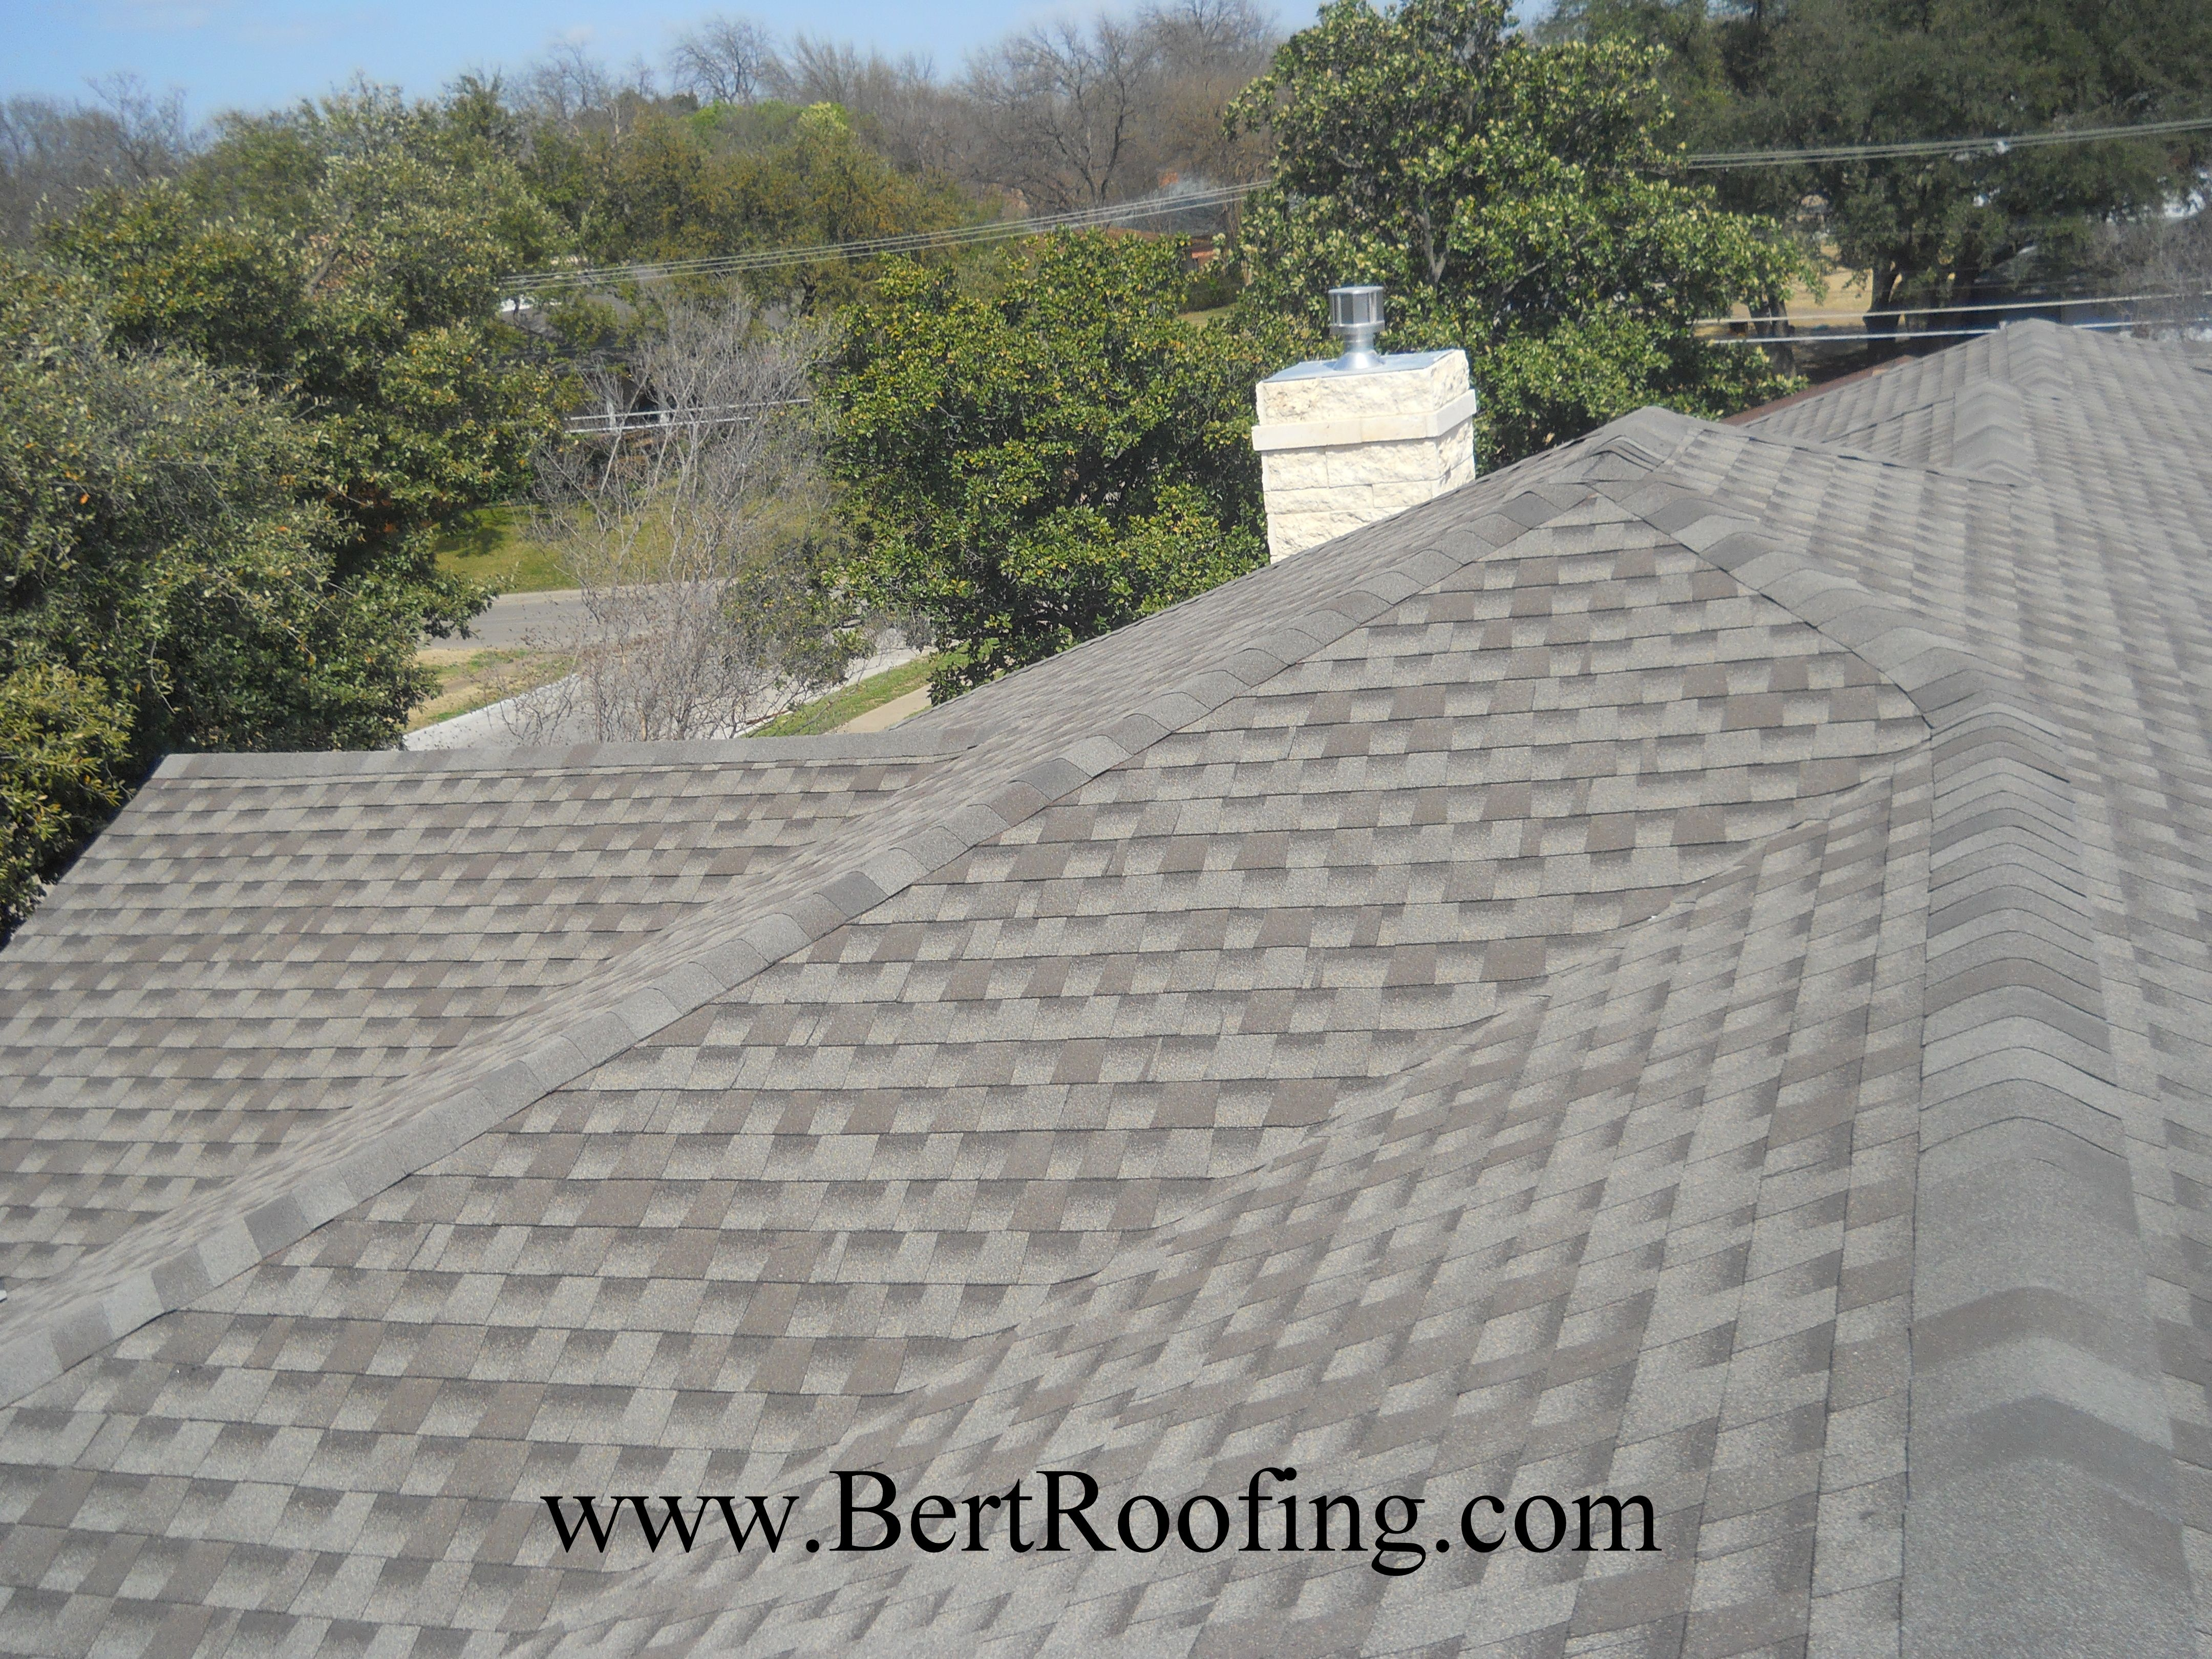 Dallas Roofing Company Bert Roofing Dallas Roofing Contractor Roof Repair Roofing Roof Cost Building